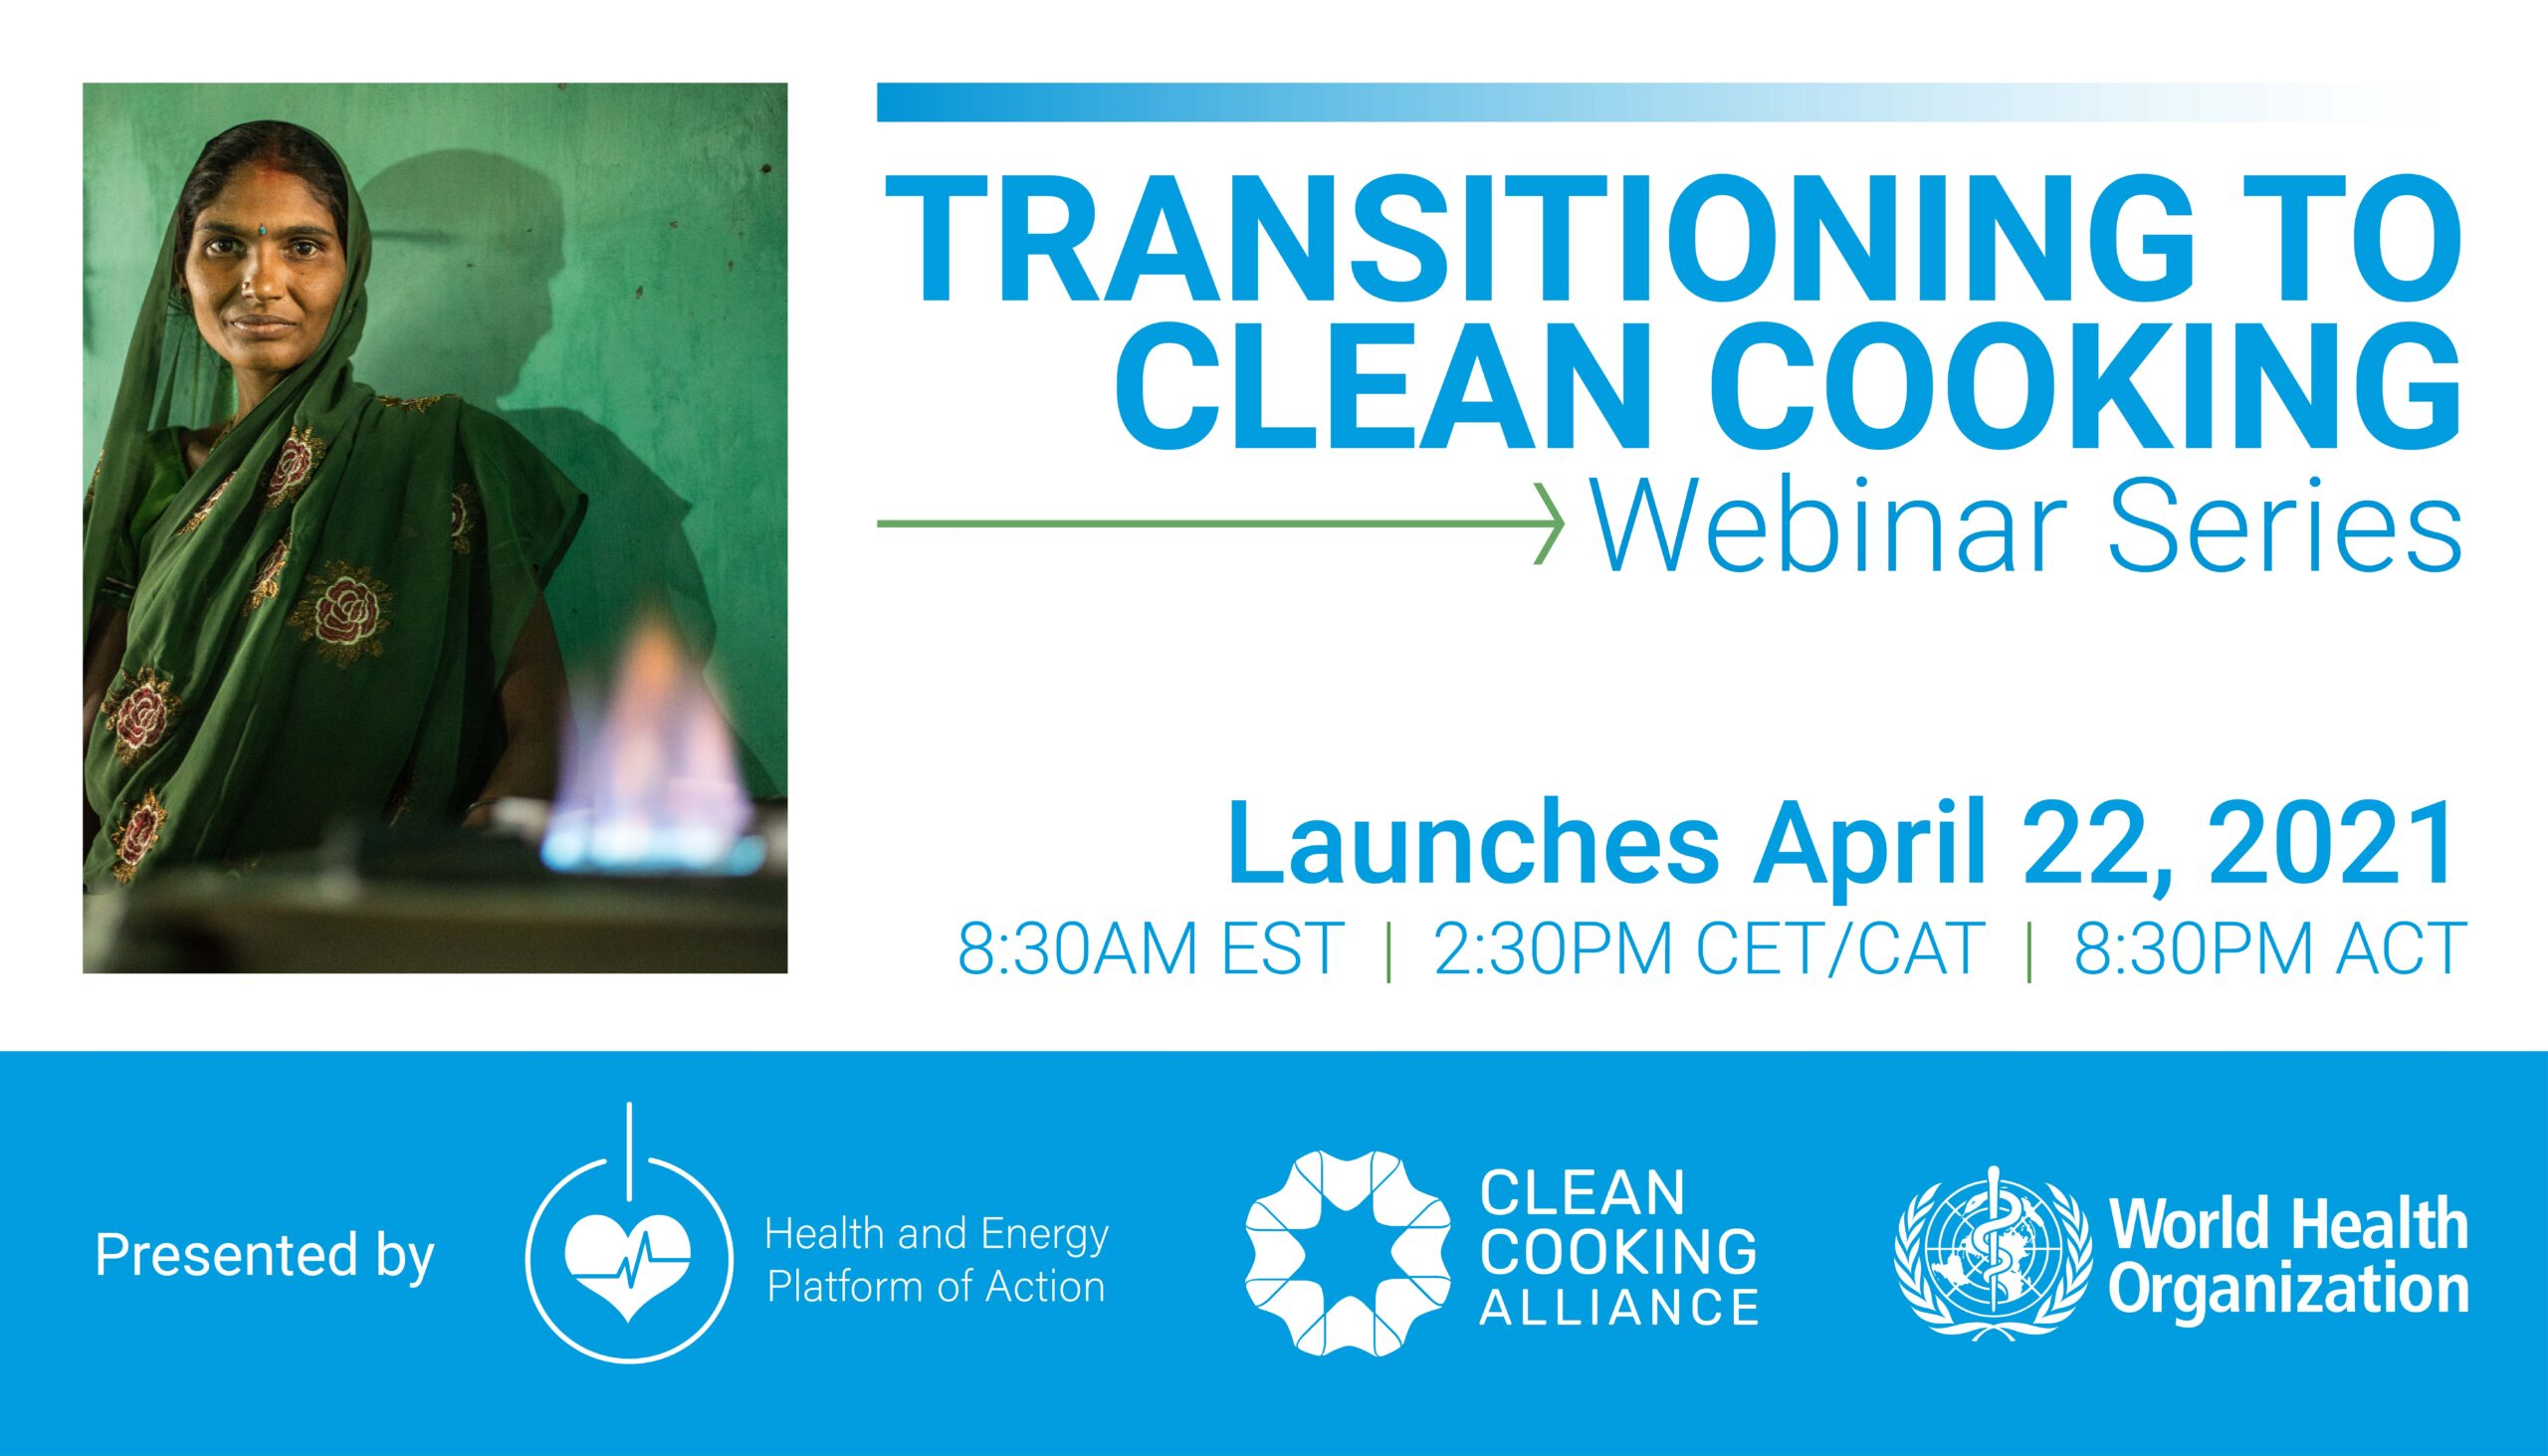 Webinar Series: Transitioning to Clean Cooking